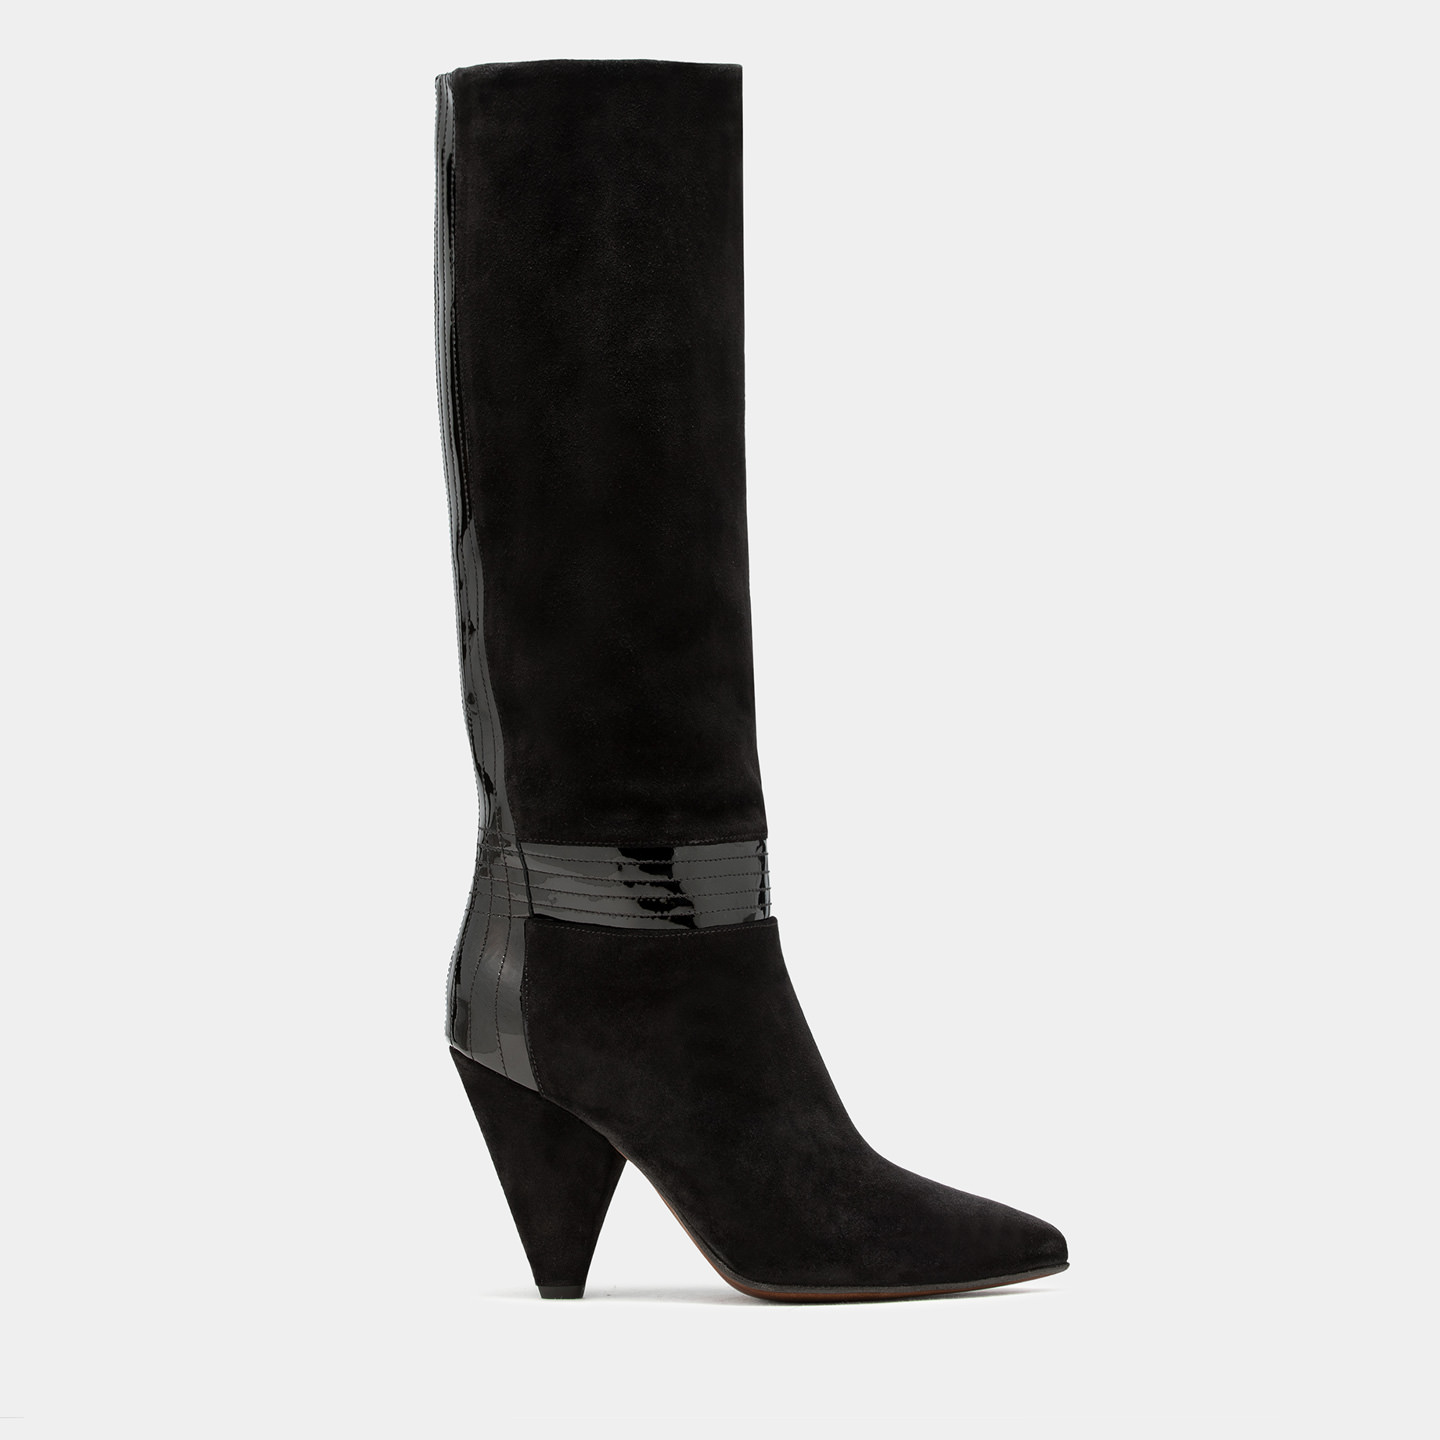 BUTTERO: BLACK SUEDE ROSE HIGH TOP BOOTS WITH PATENT LEATHER INSERTS